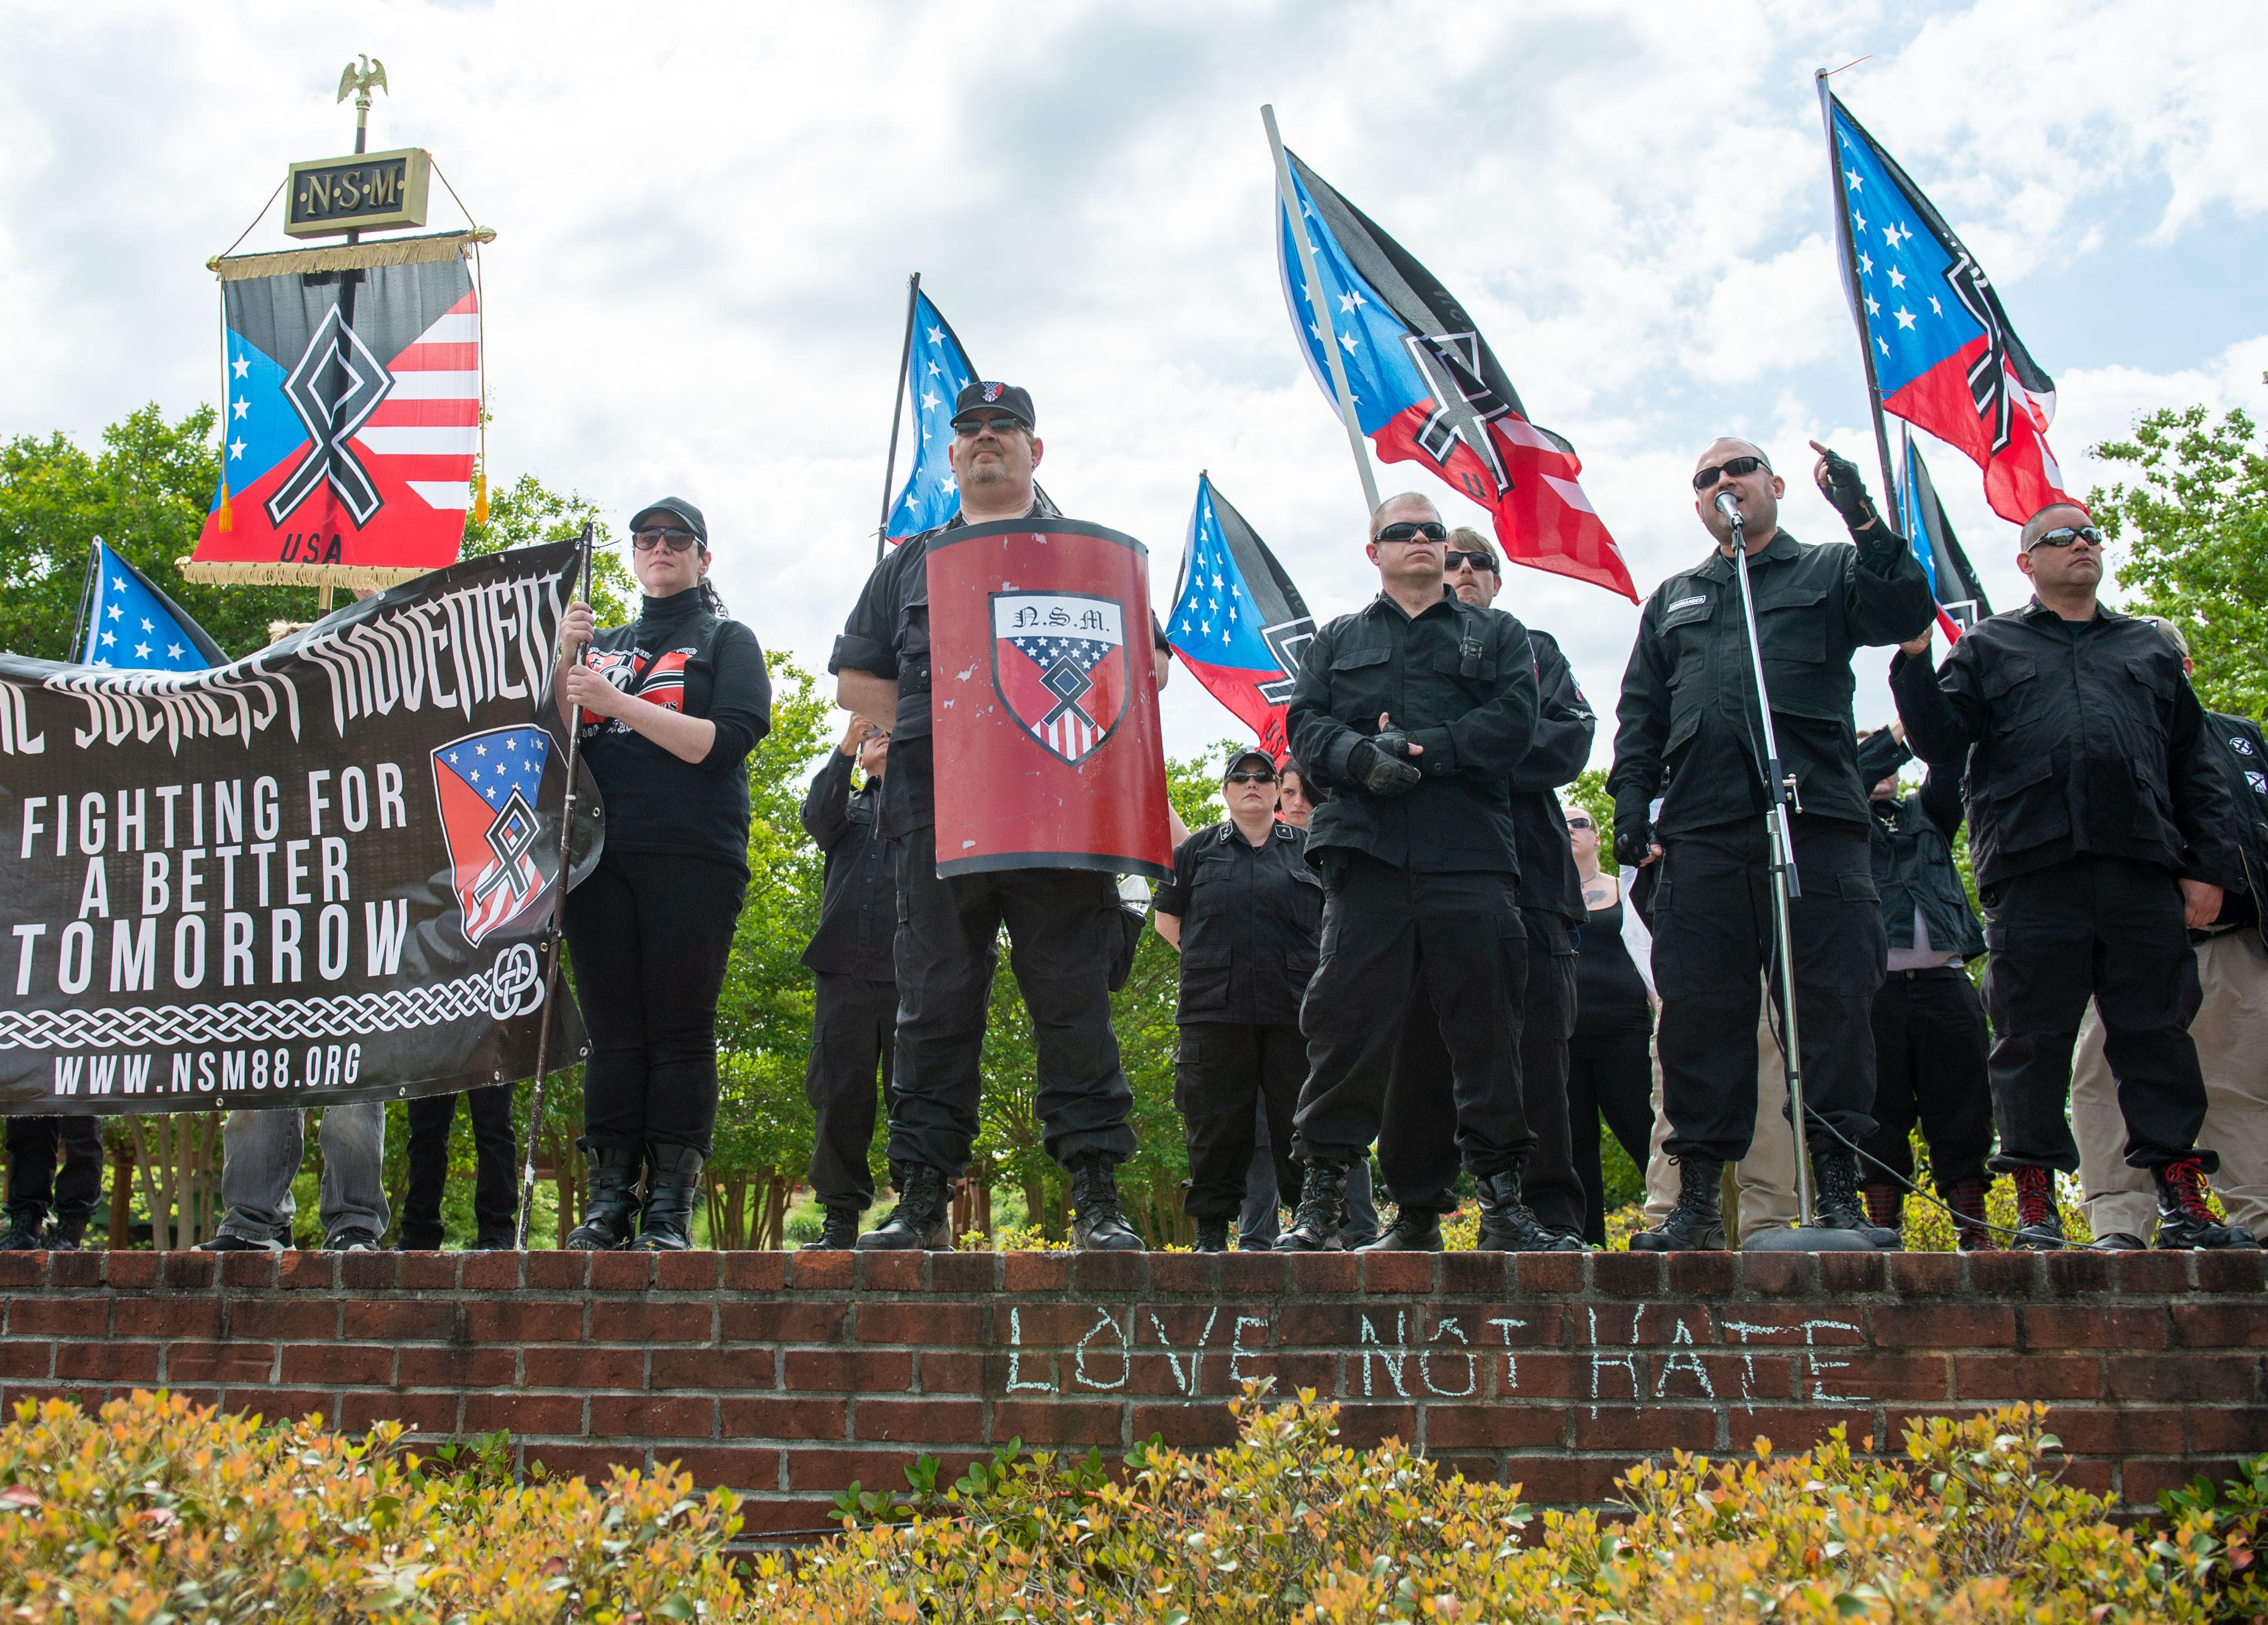 National Socialist Movement leader Jeff Schoep (2nd R) speaks during a white nationalist rally in Newnan, Georgia on April 21, 2018.